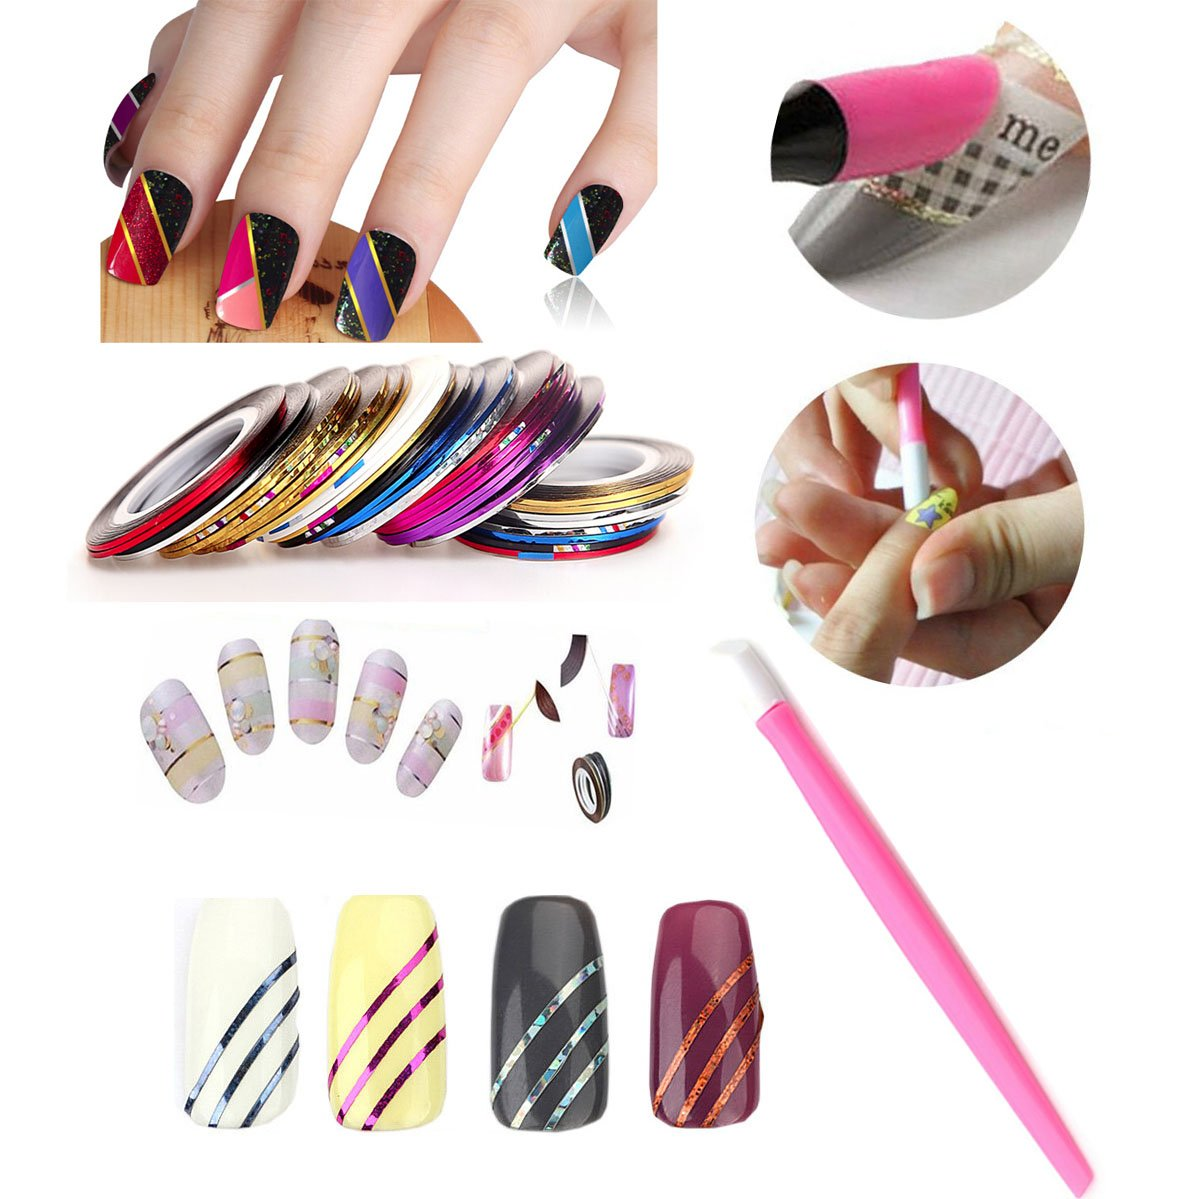 Amazon.com : Nail Art Tools Manicure Kit 15PCS Nail Painting Brush ...